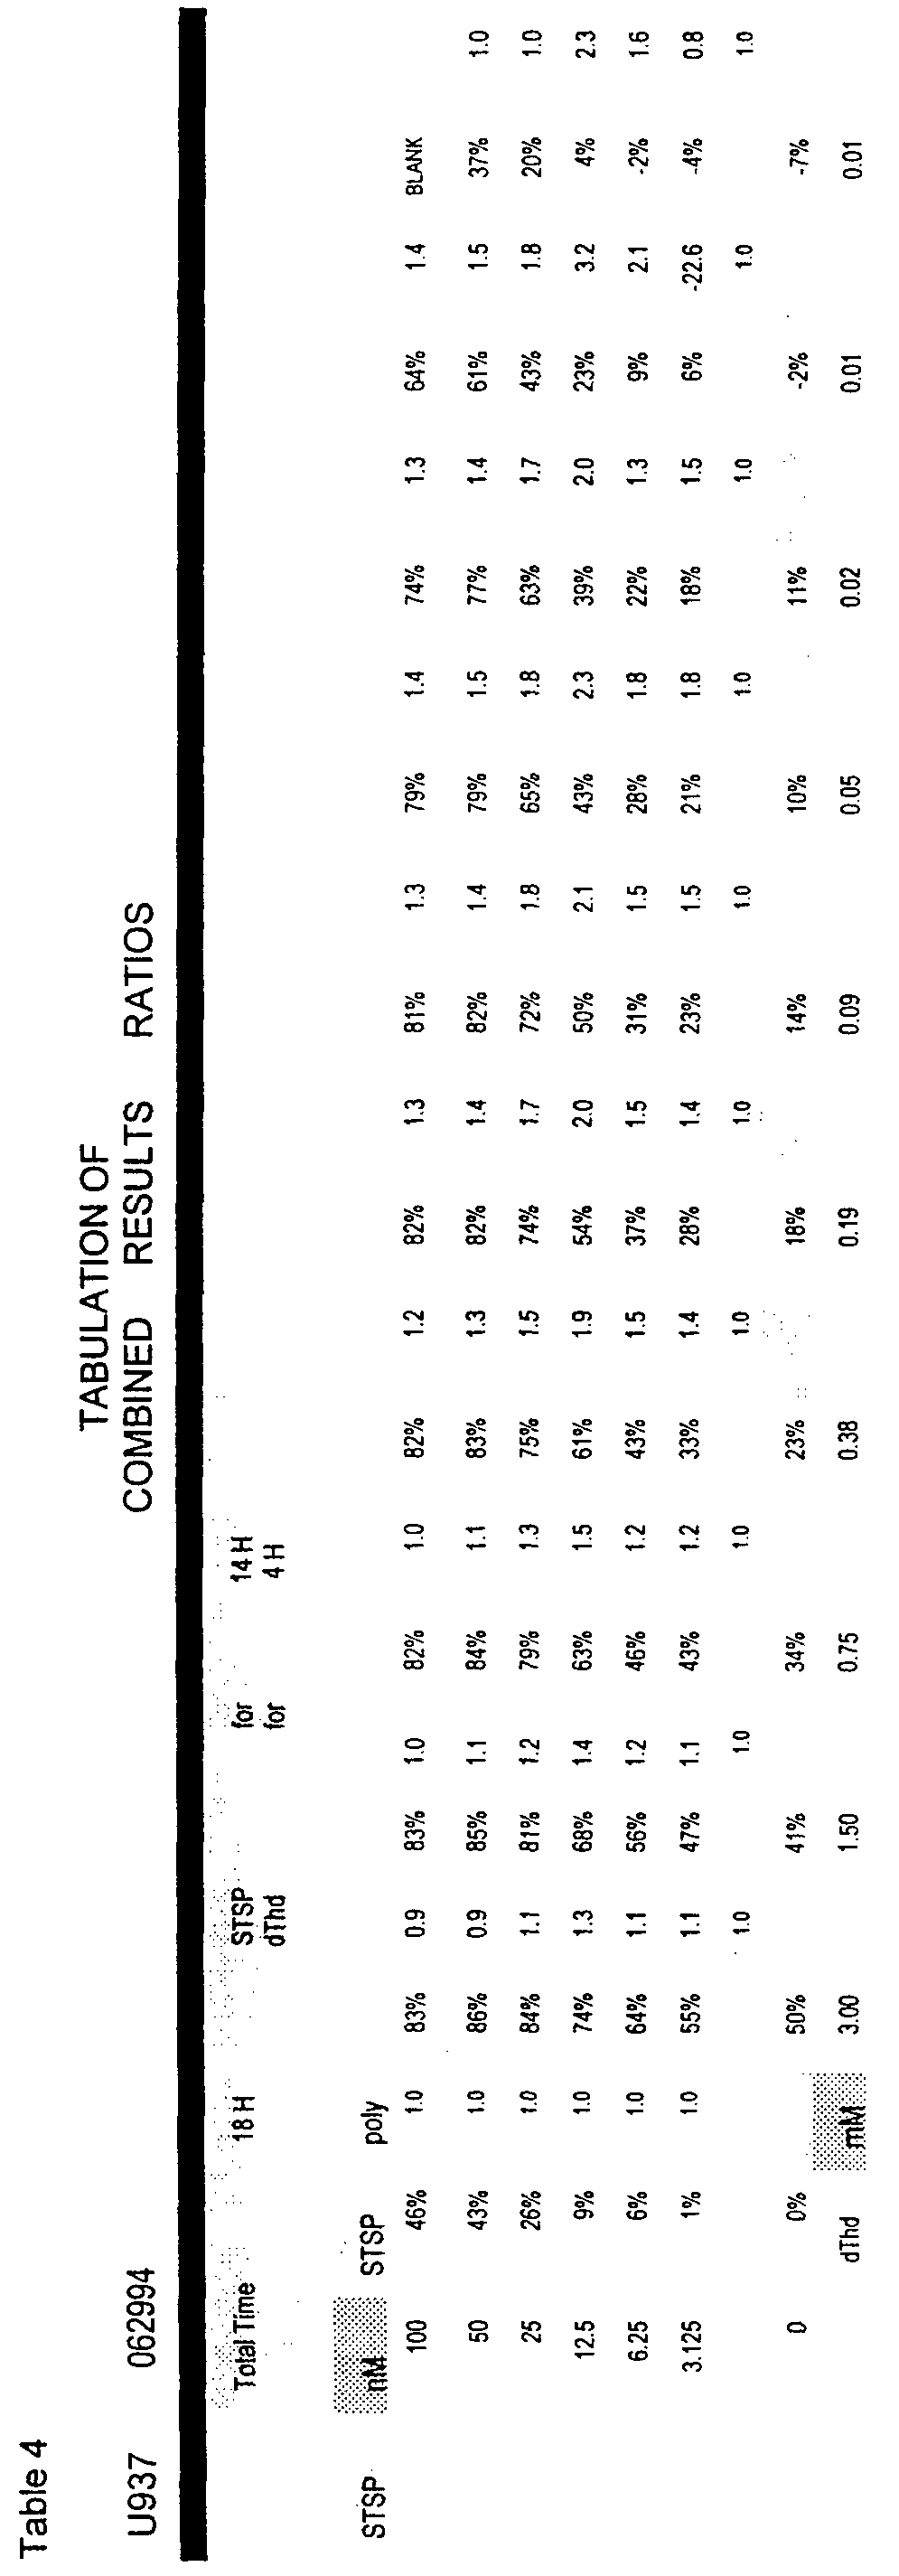 wo1997001344a2 method of dynamic retardation of cell cycle rh google com